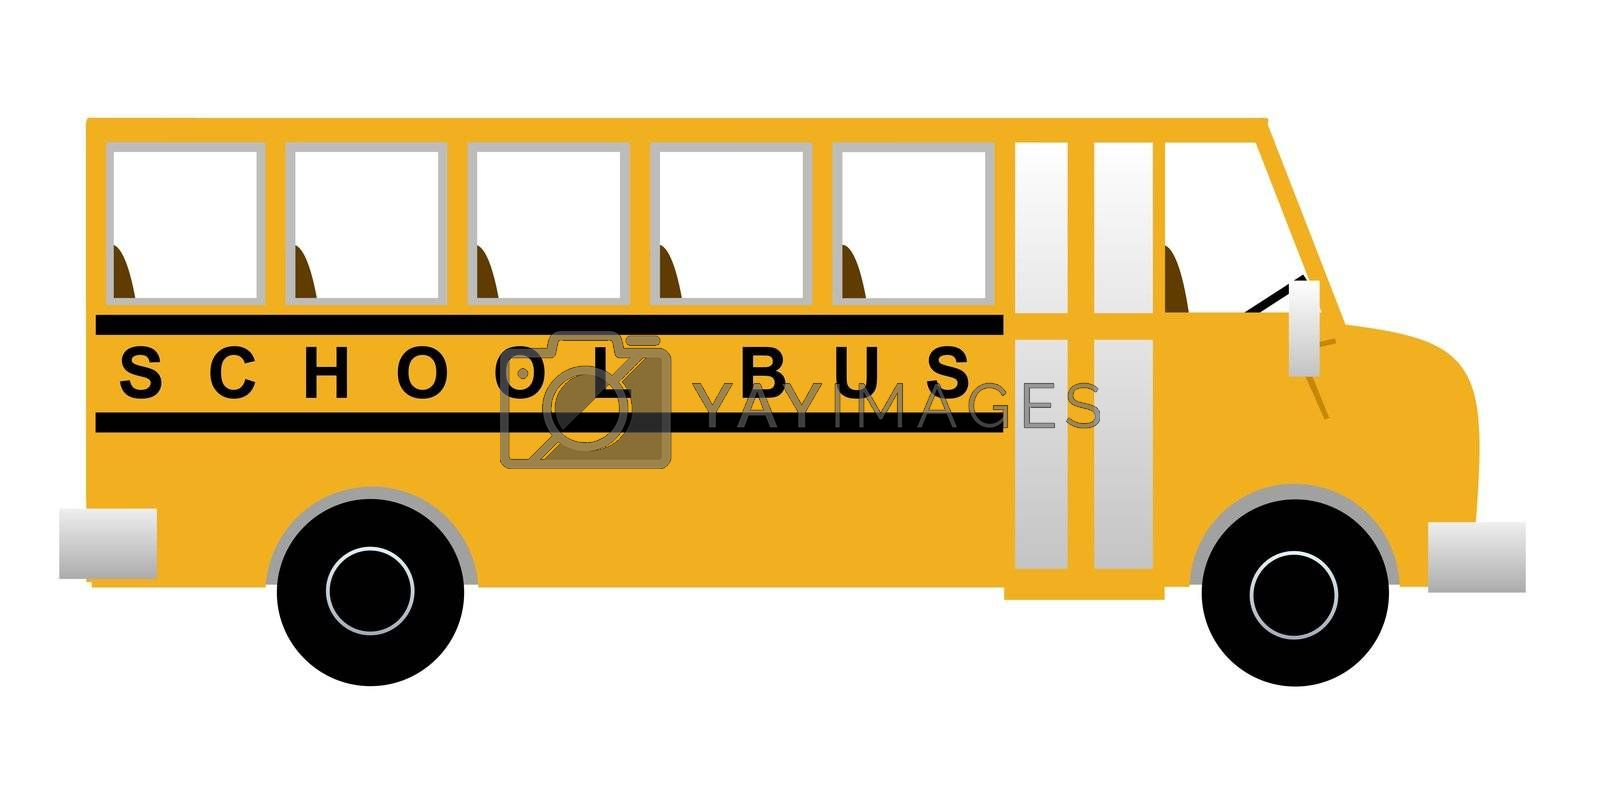 Illustration of a school bus from the side